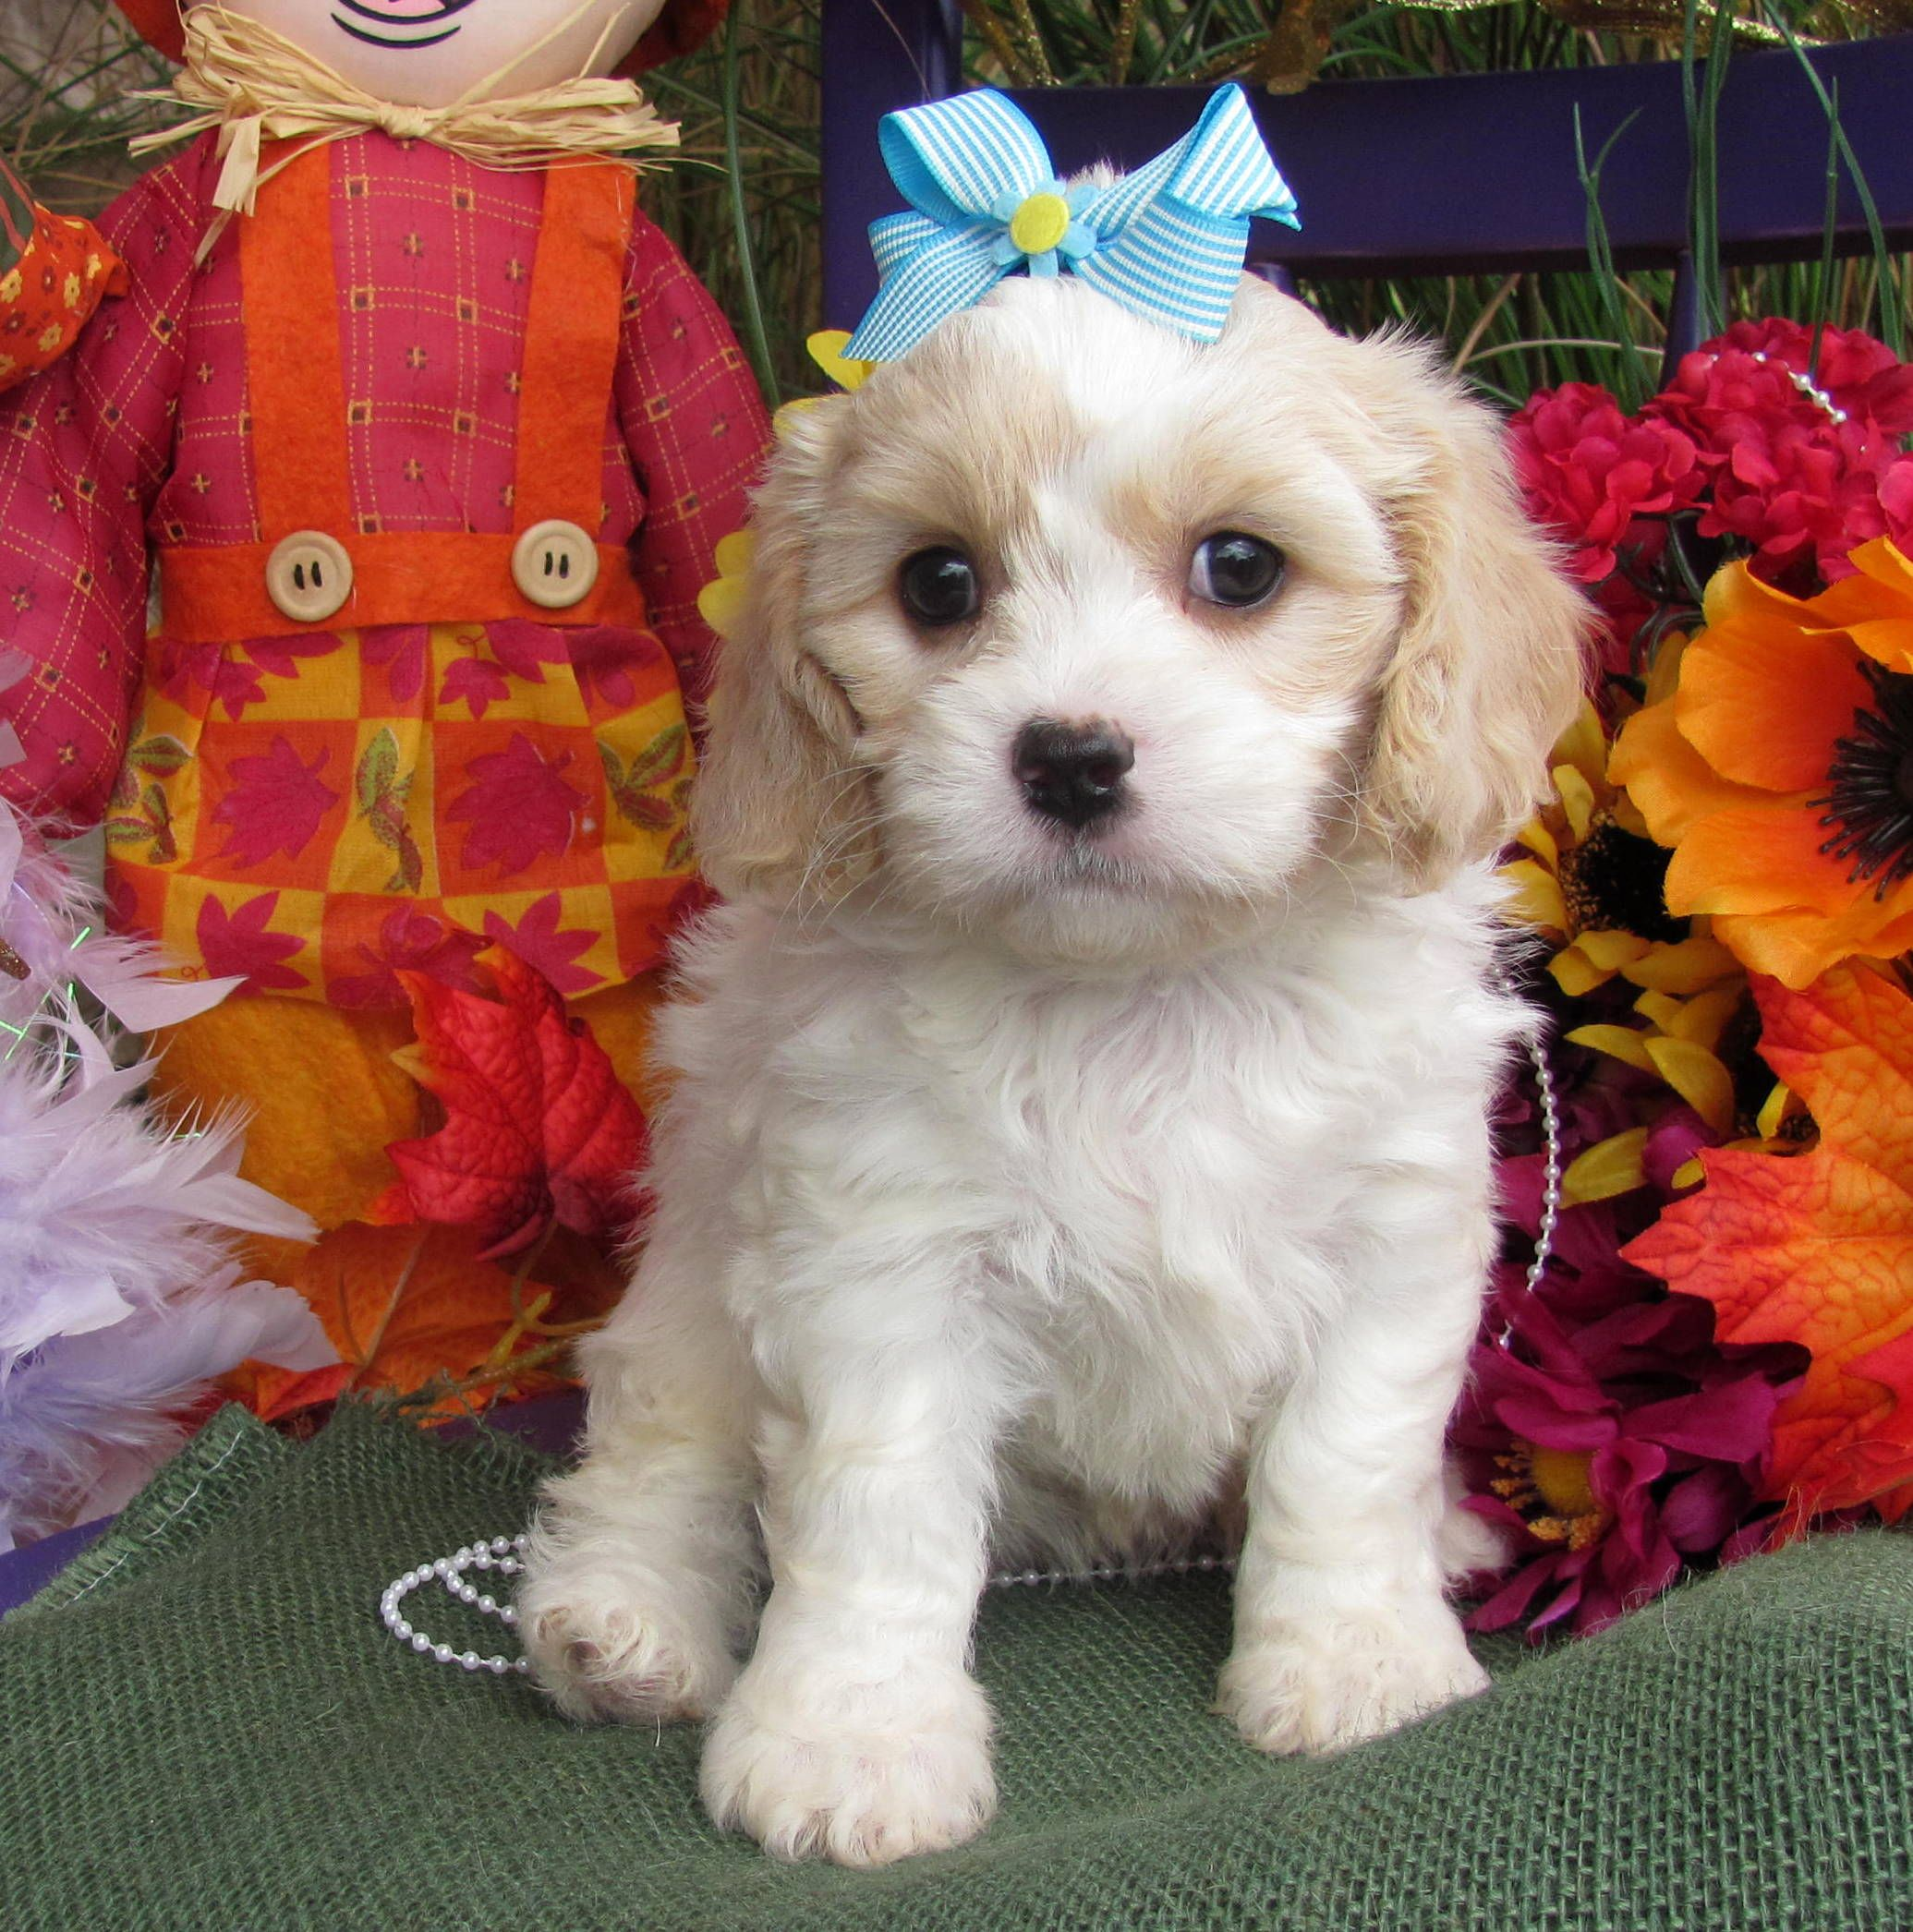 Www Cavachonsbydesign Com Cavachon Puppies For Sale Cavachon